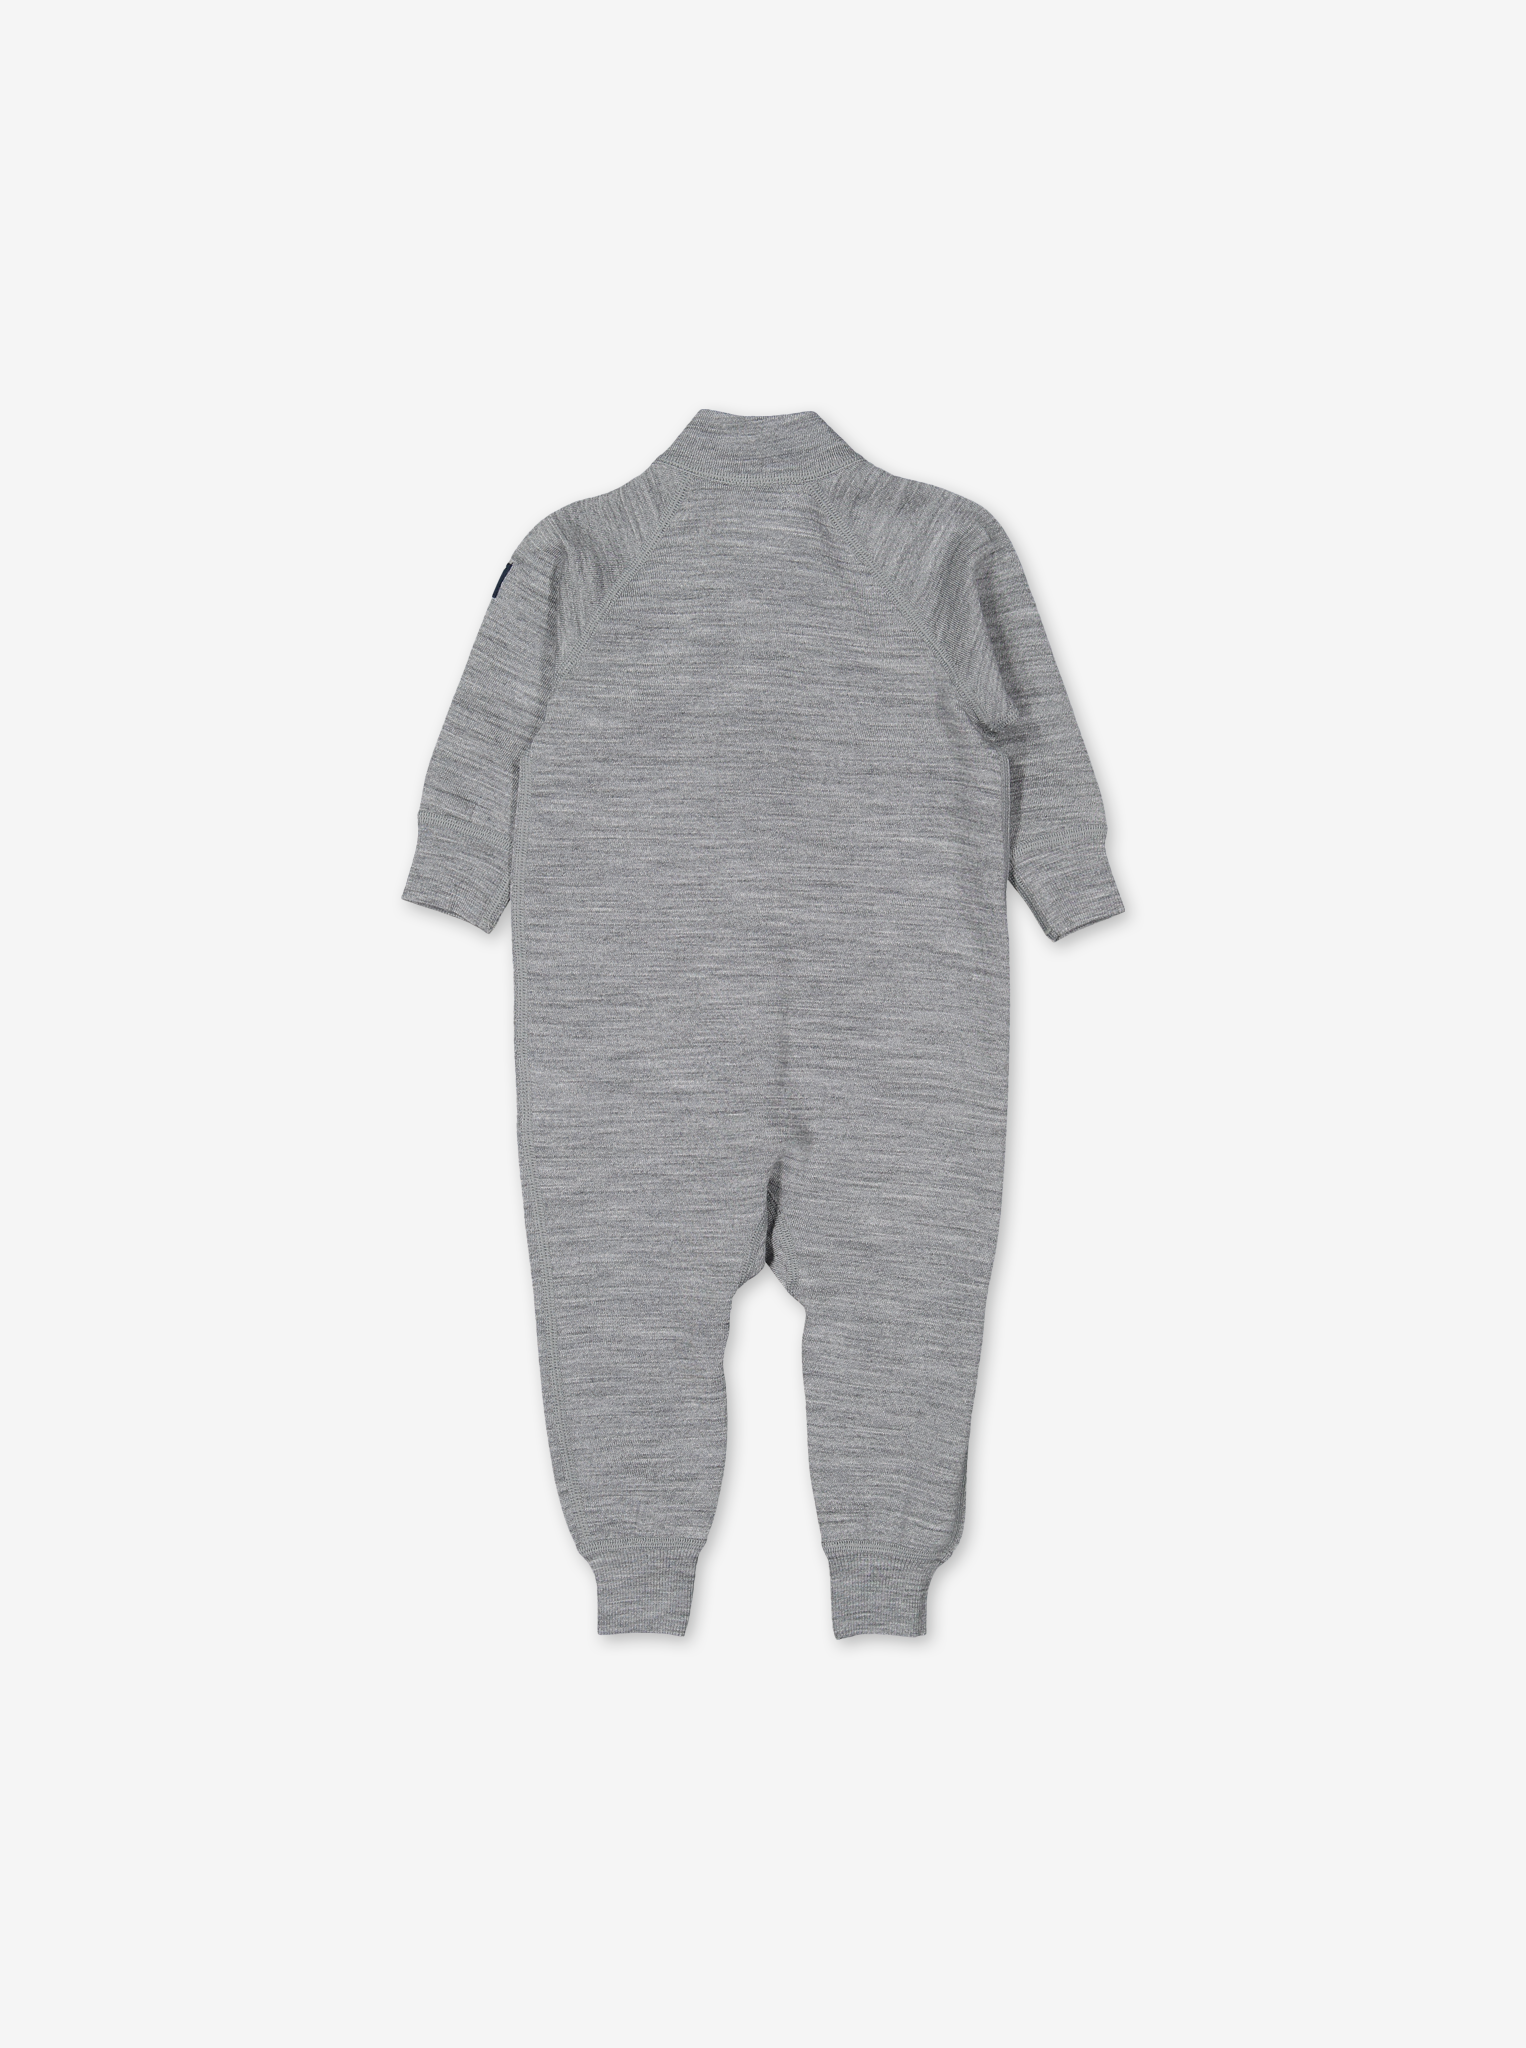 Thermal Merino All-In-OneGreyUnisex1m-6y